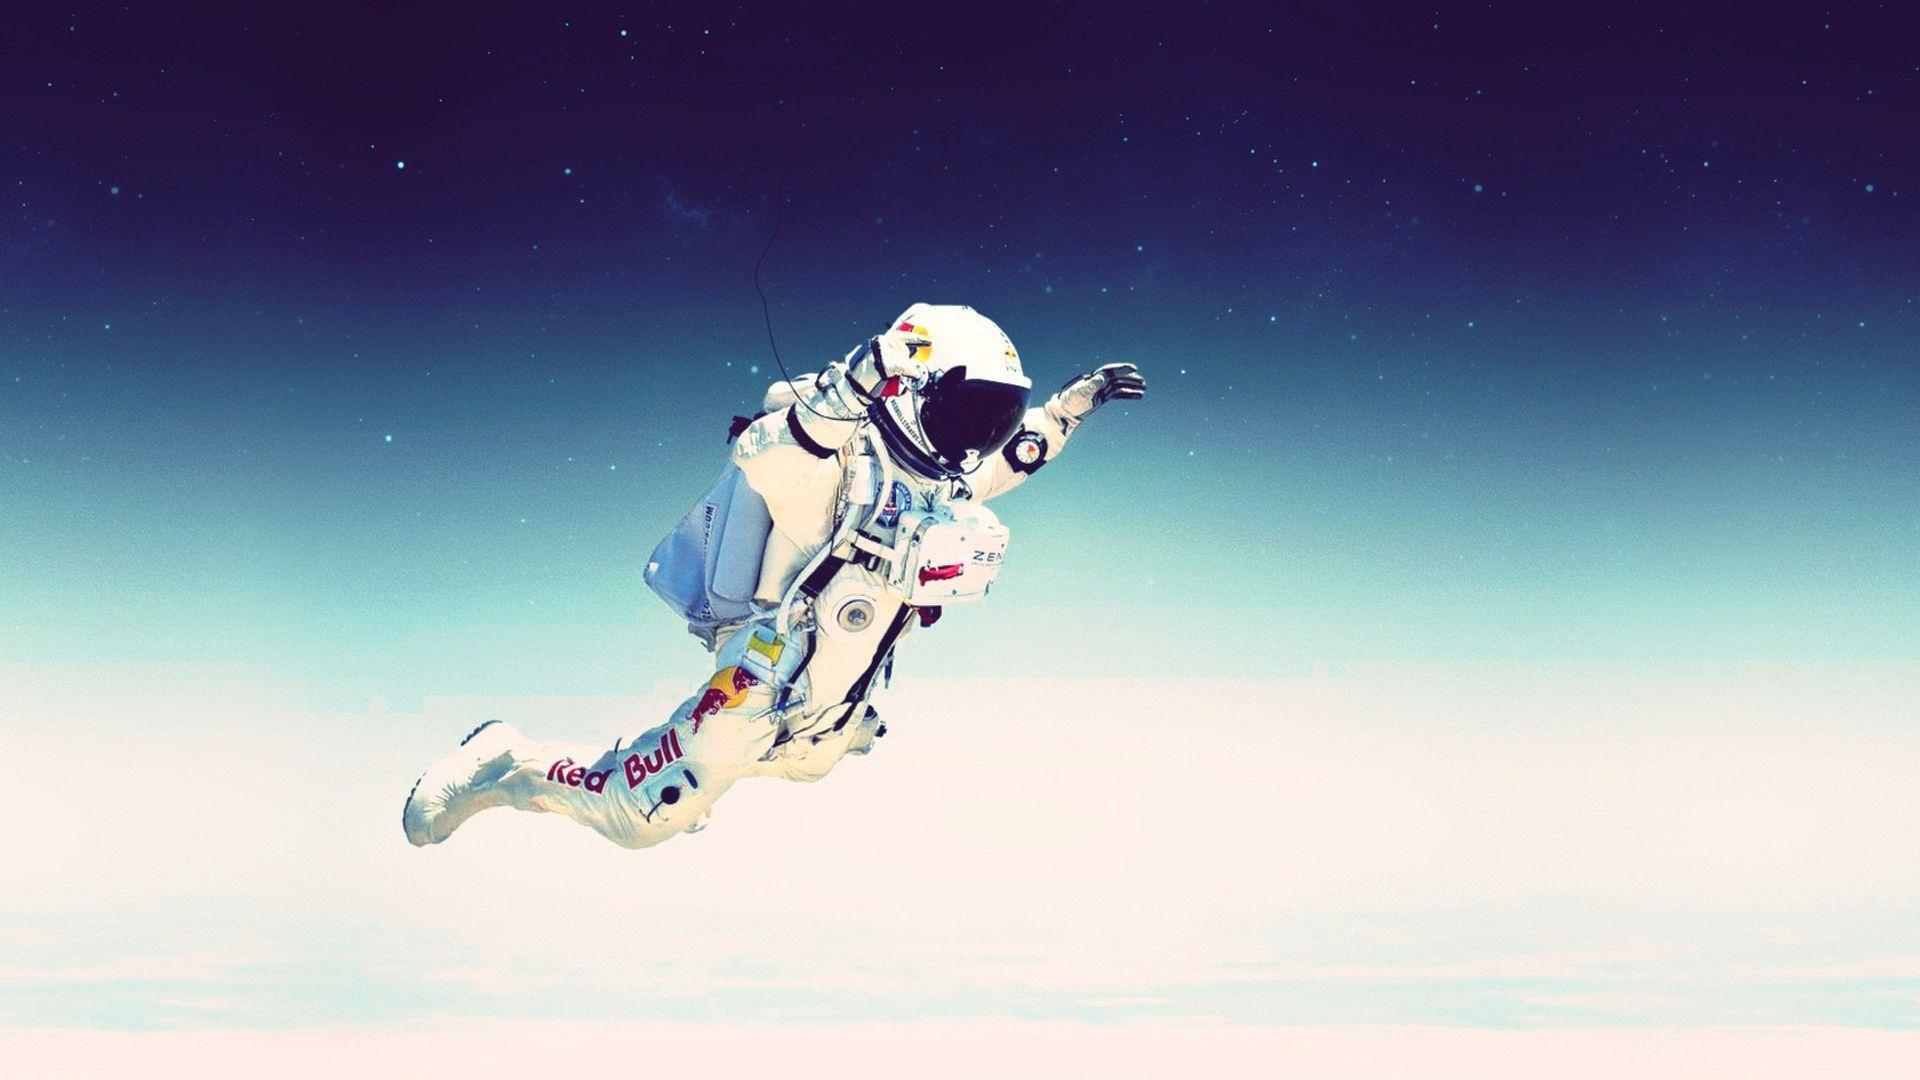 wallpapers trippy astronaut surfer - photo #26